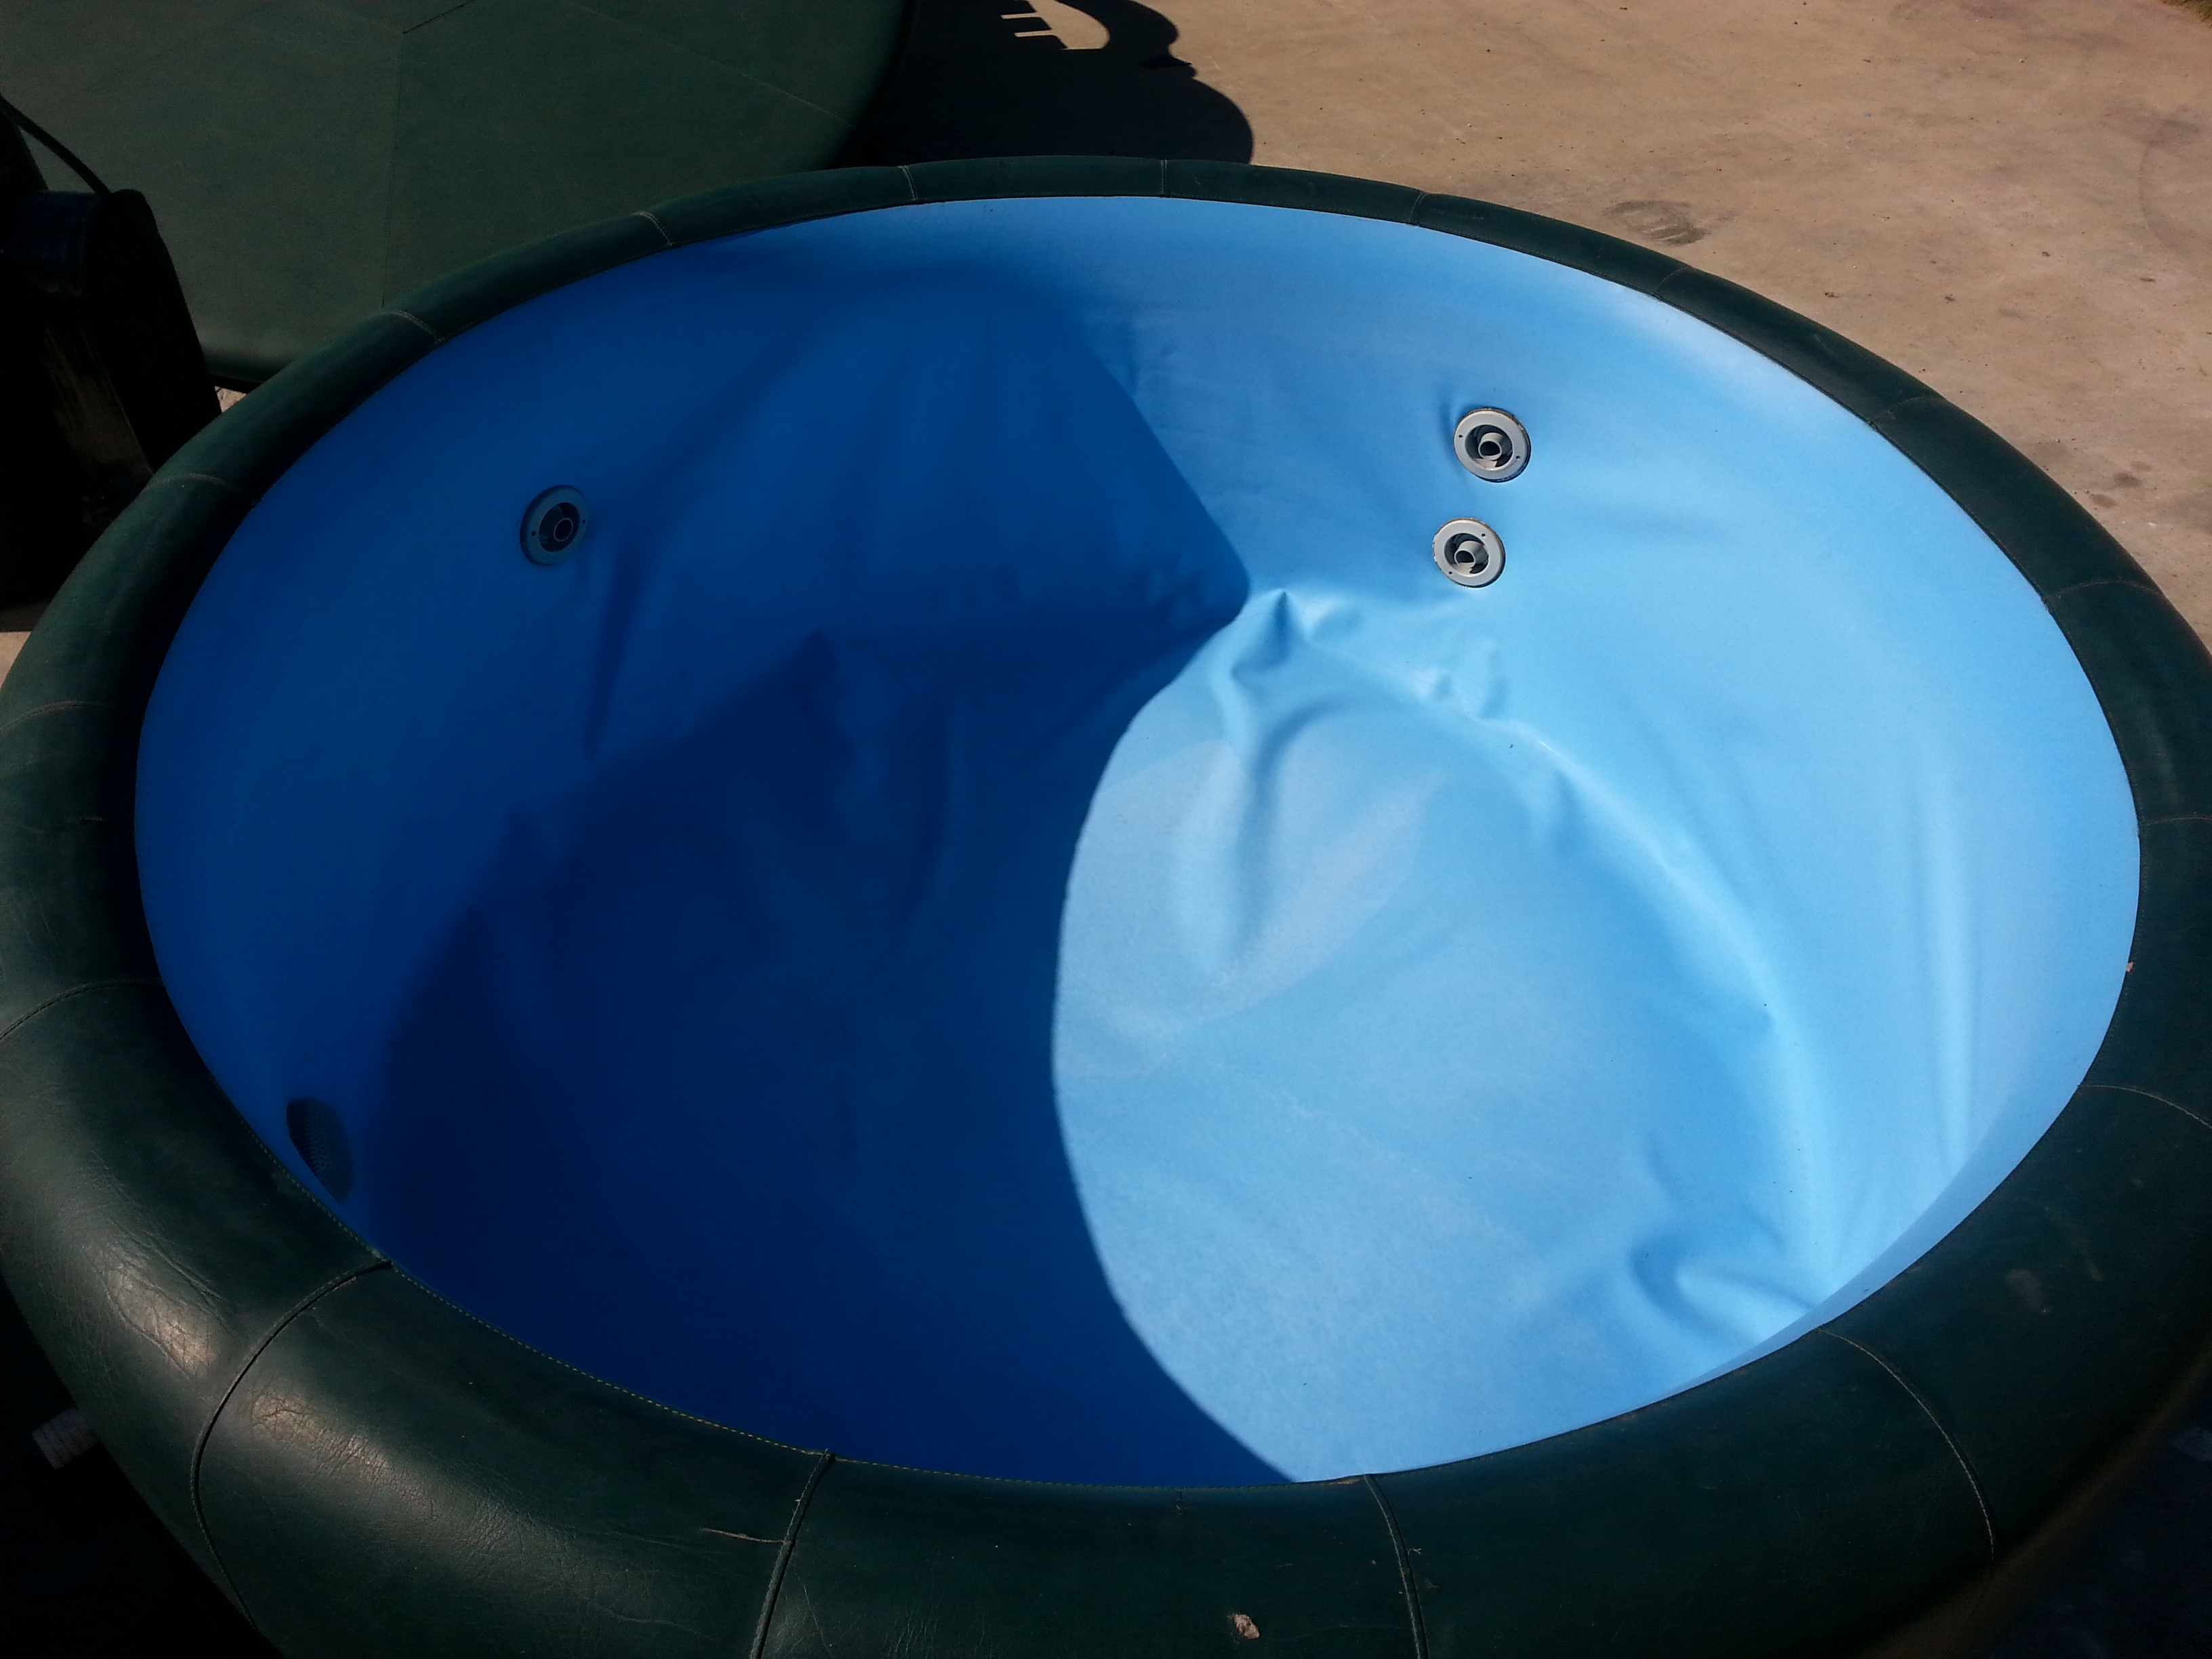 prices would in used buy appointment an please tubs factoryhottubs you the hot like we arrange to delivery if tub for img best ca call person see these sale can